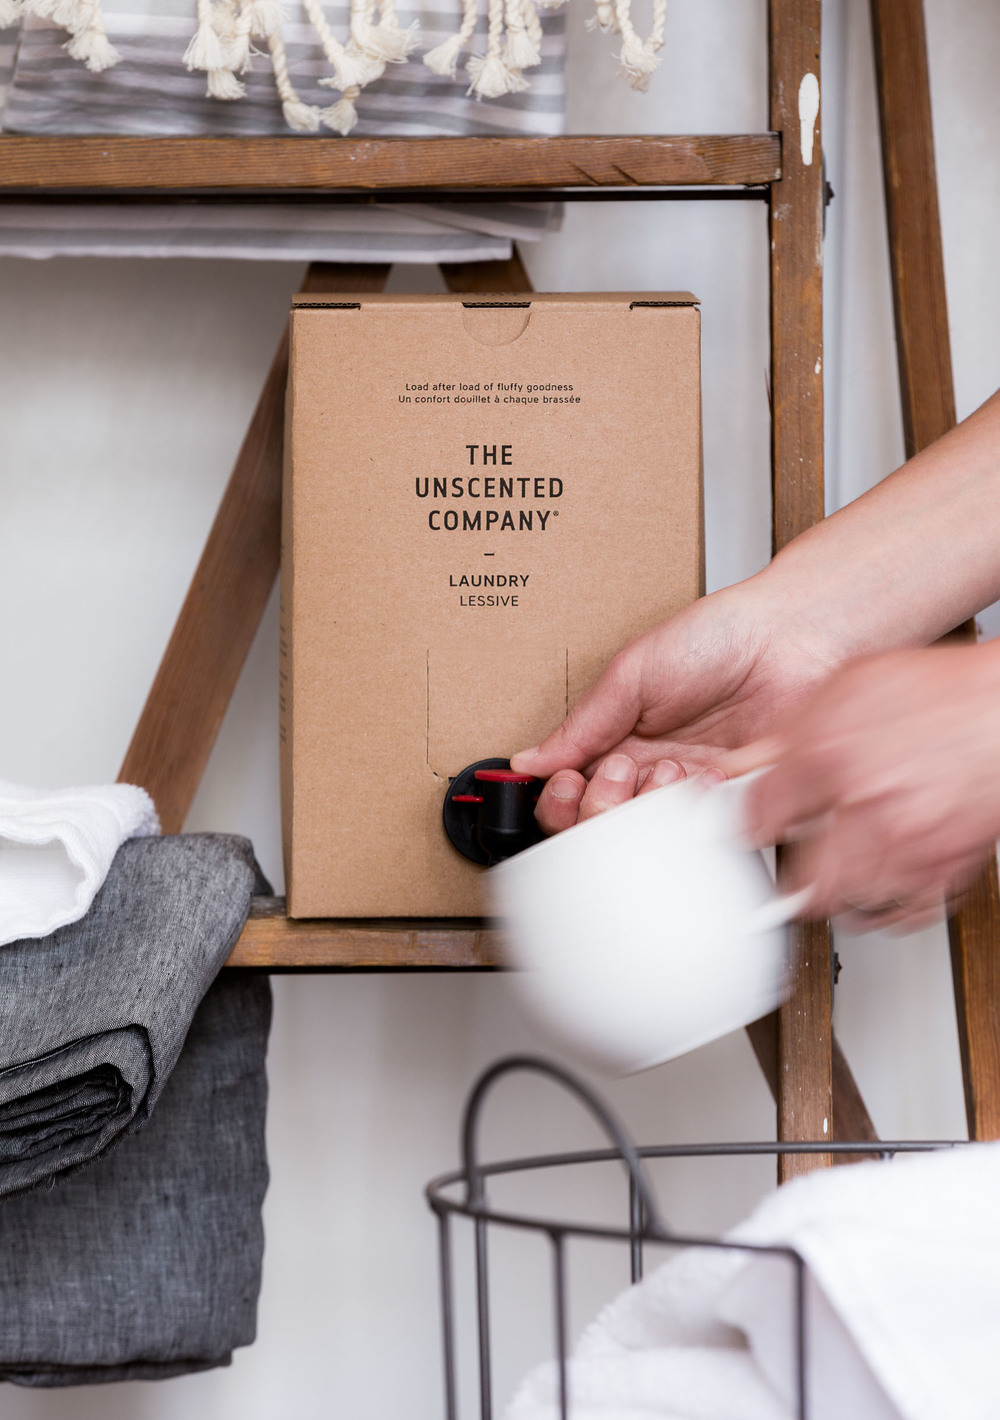 THE UNSCENTED COMPANY, SUSTAINABILITY AND PRODUCT IMPACT